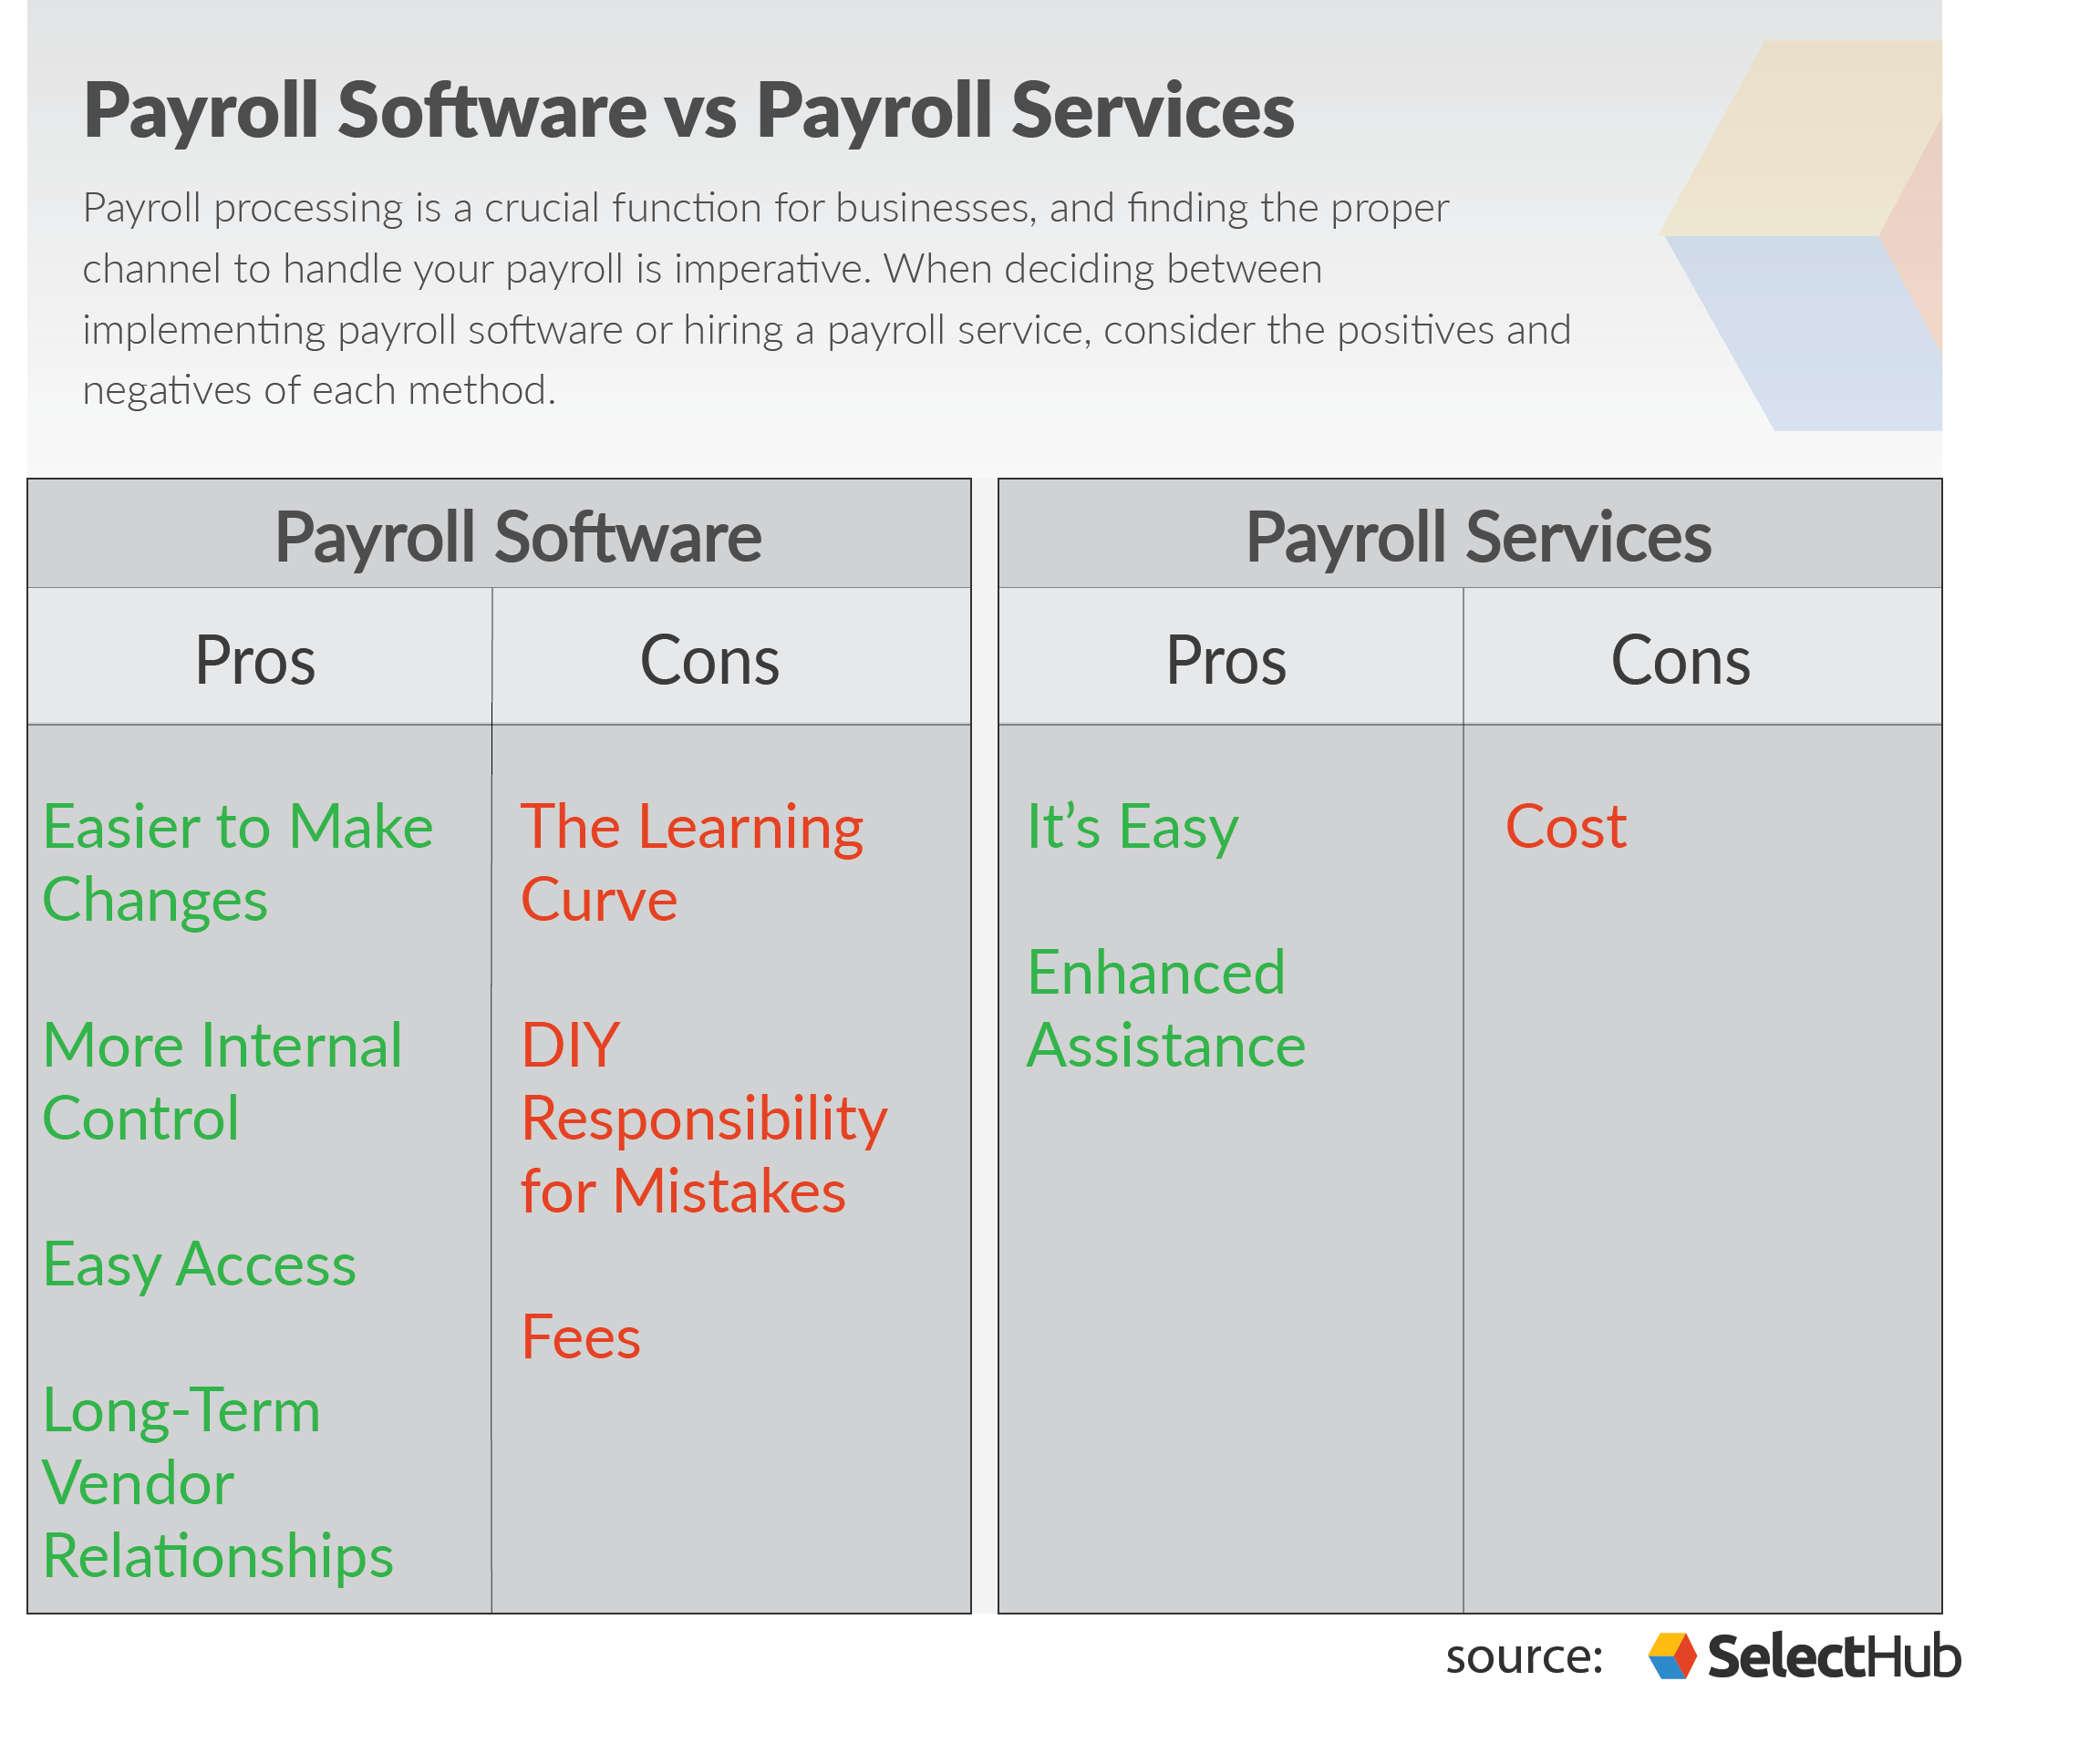 Payroll Software Vs Payroll Services